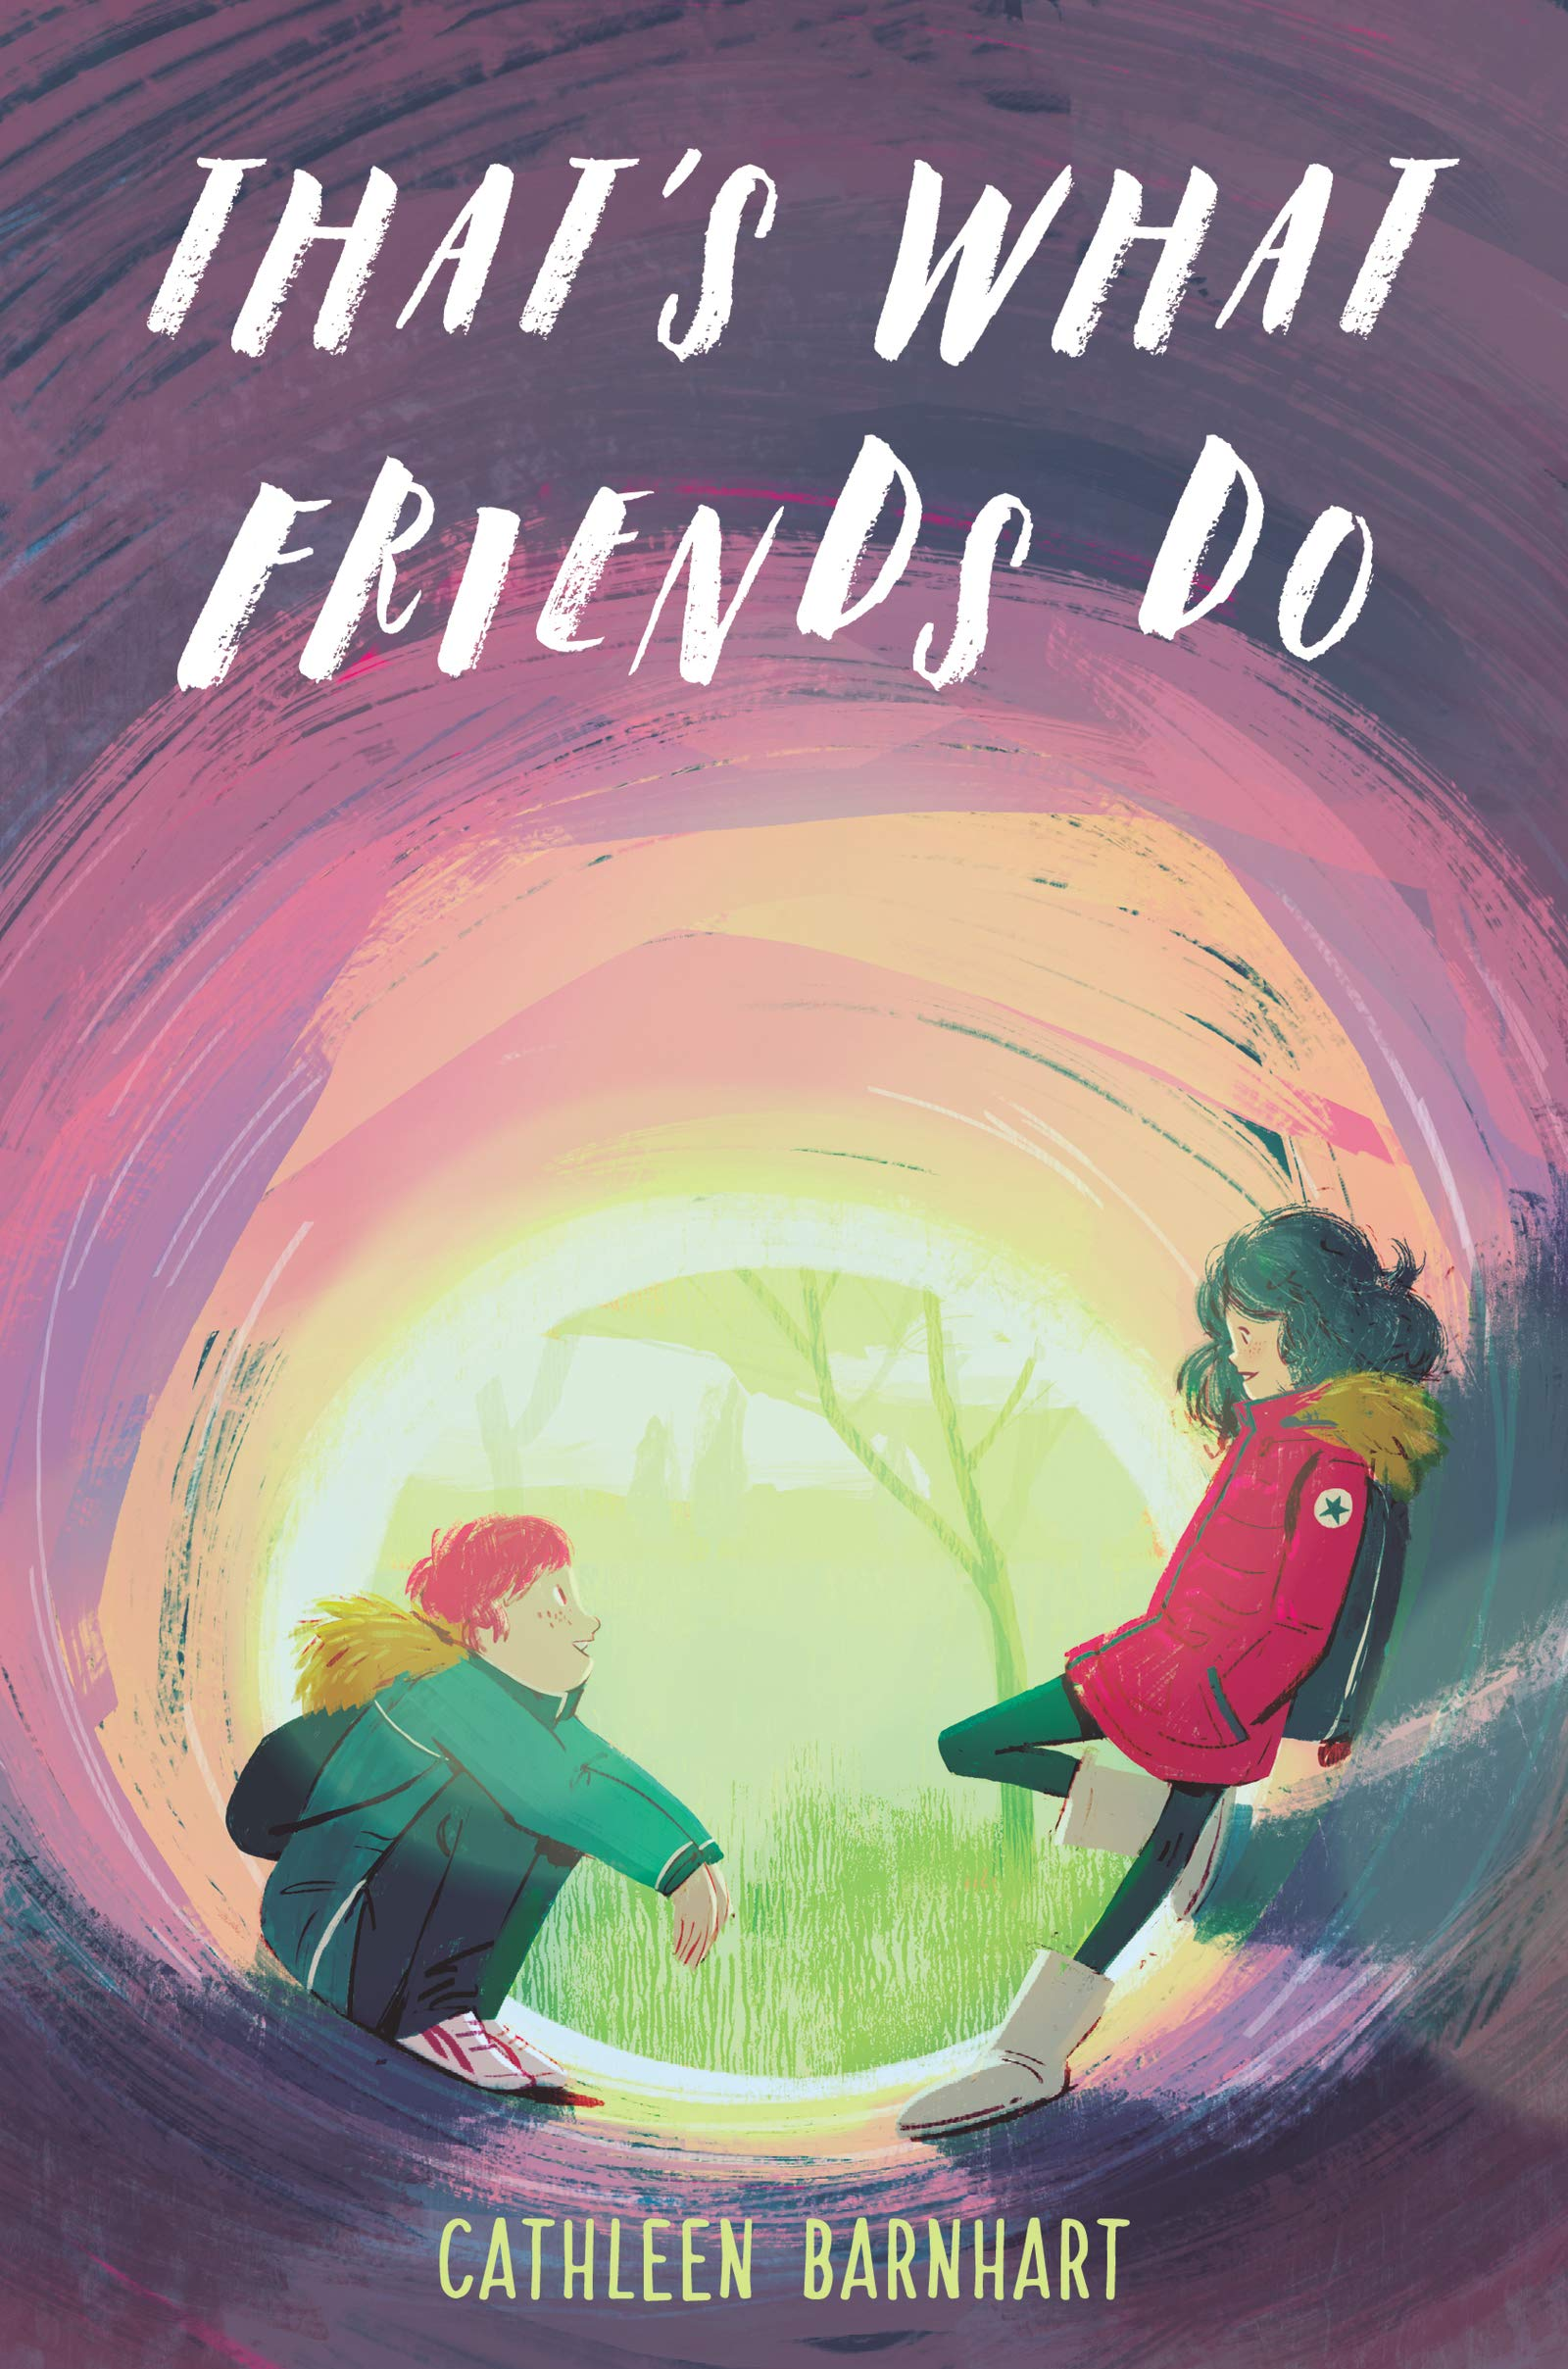 Image result for that's what friends do cathleen barnhart